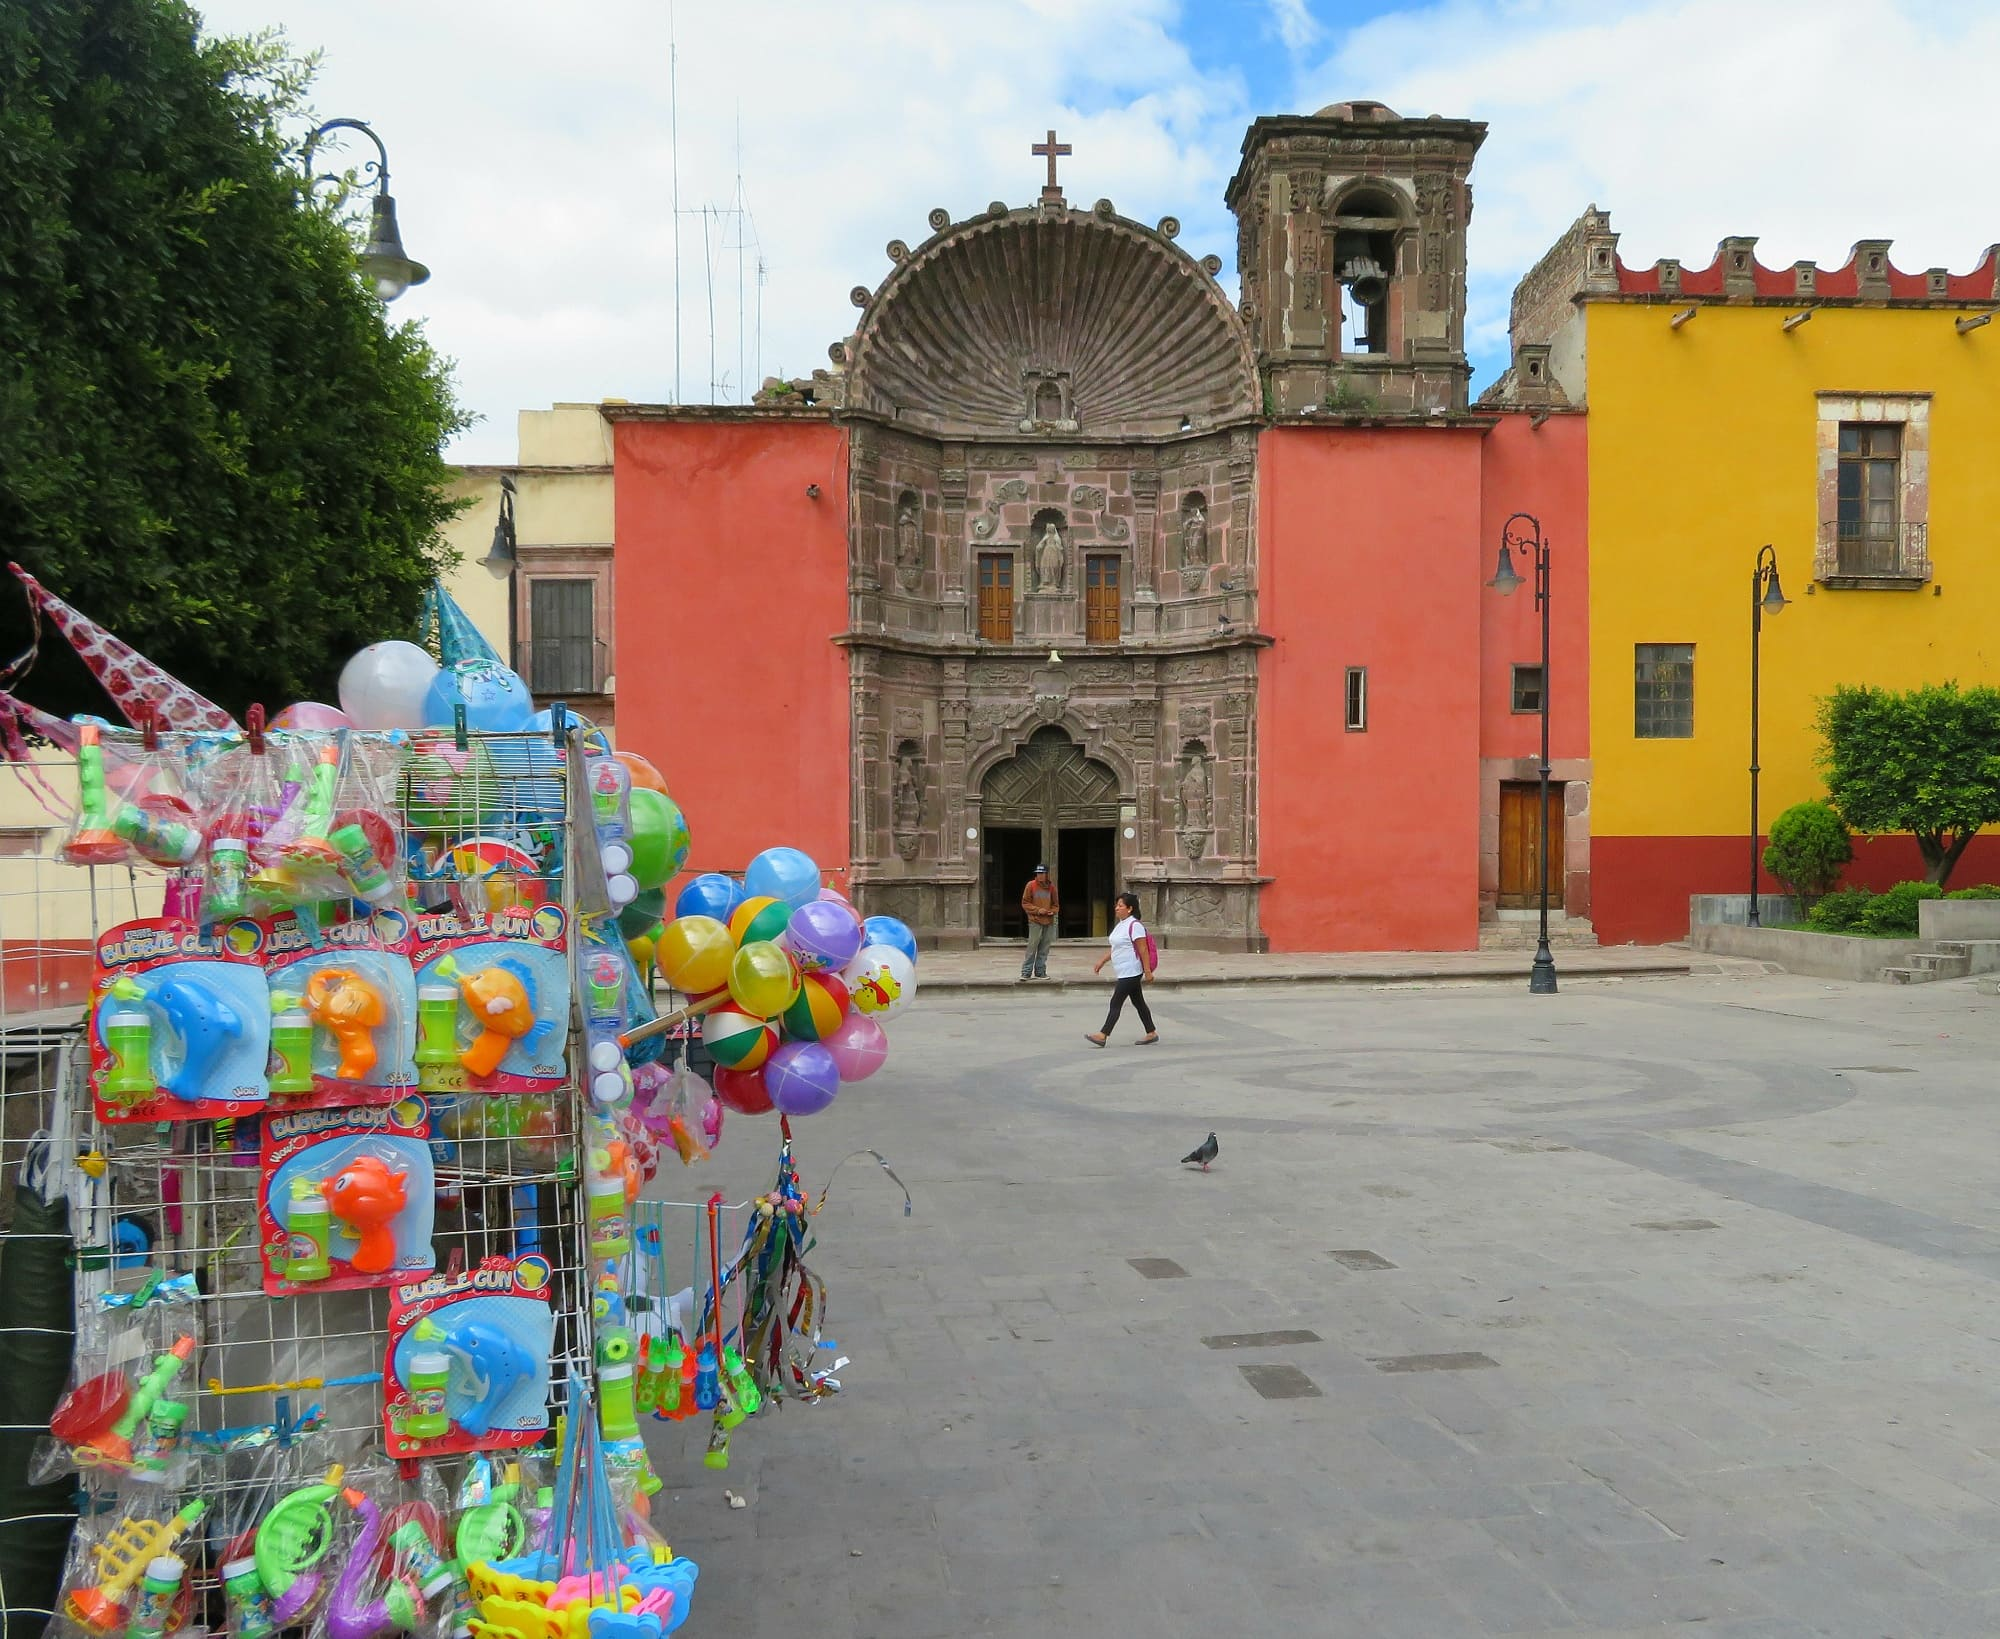 Toys for sale at Plaza de la Soledad in San Miguel de Allende with kids